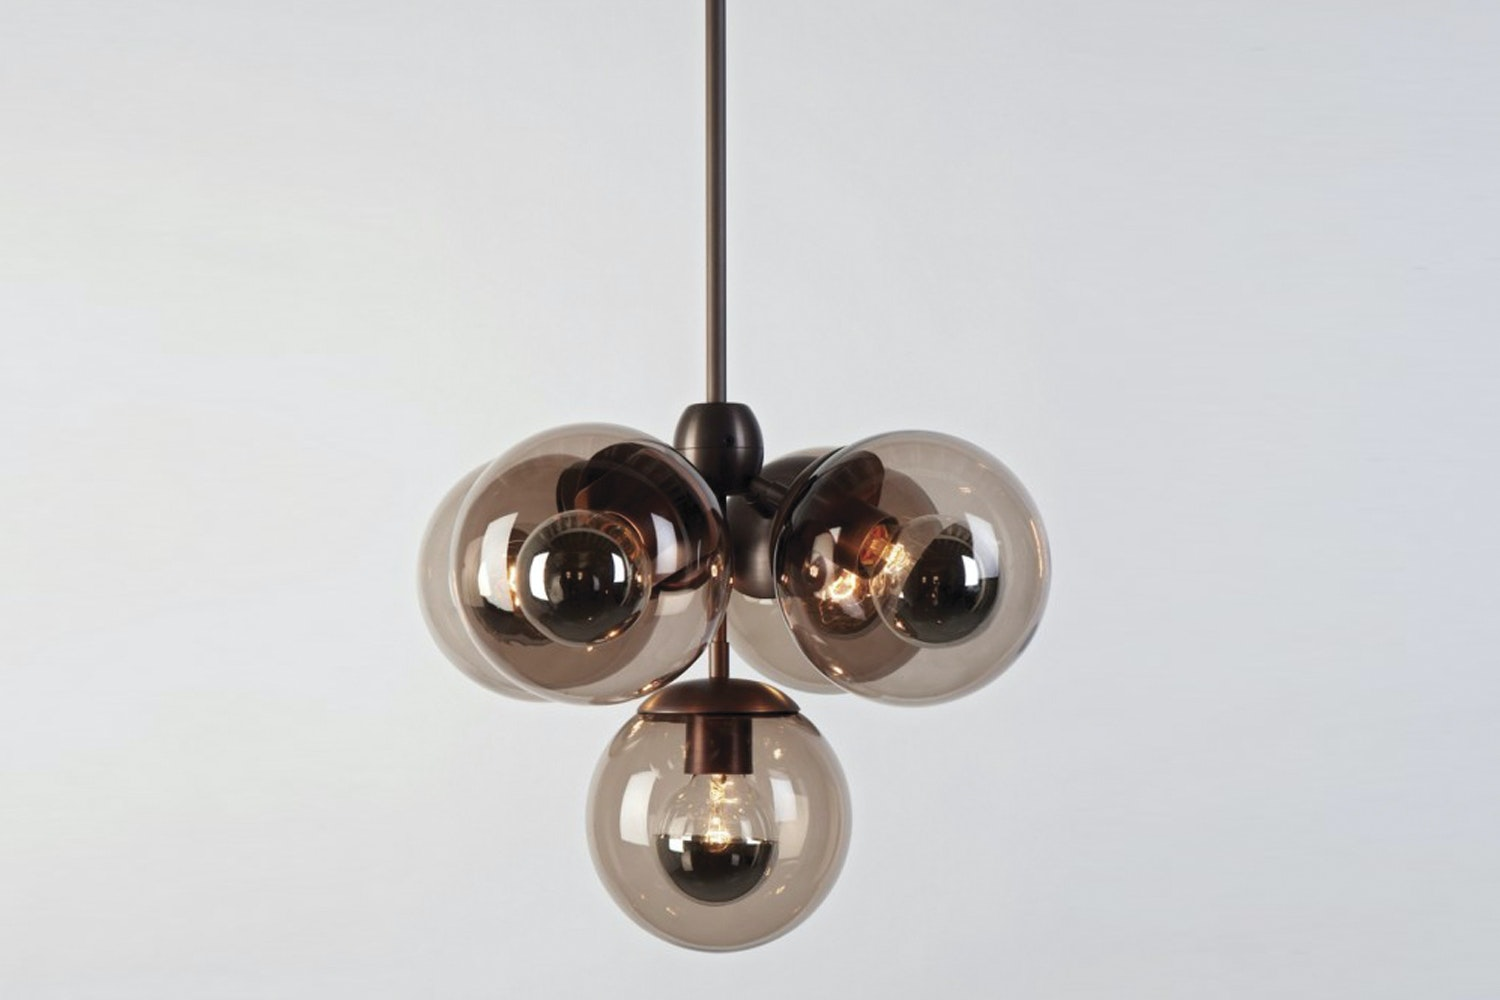 Modo Pendant Suspension Lamp by Jason Miller for Roll & Hill